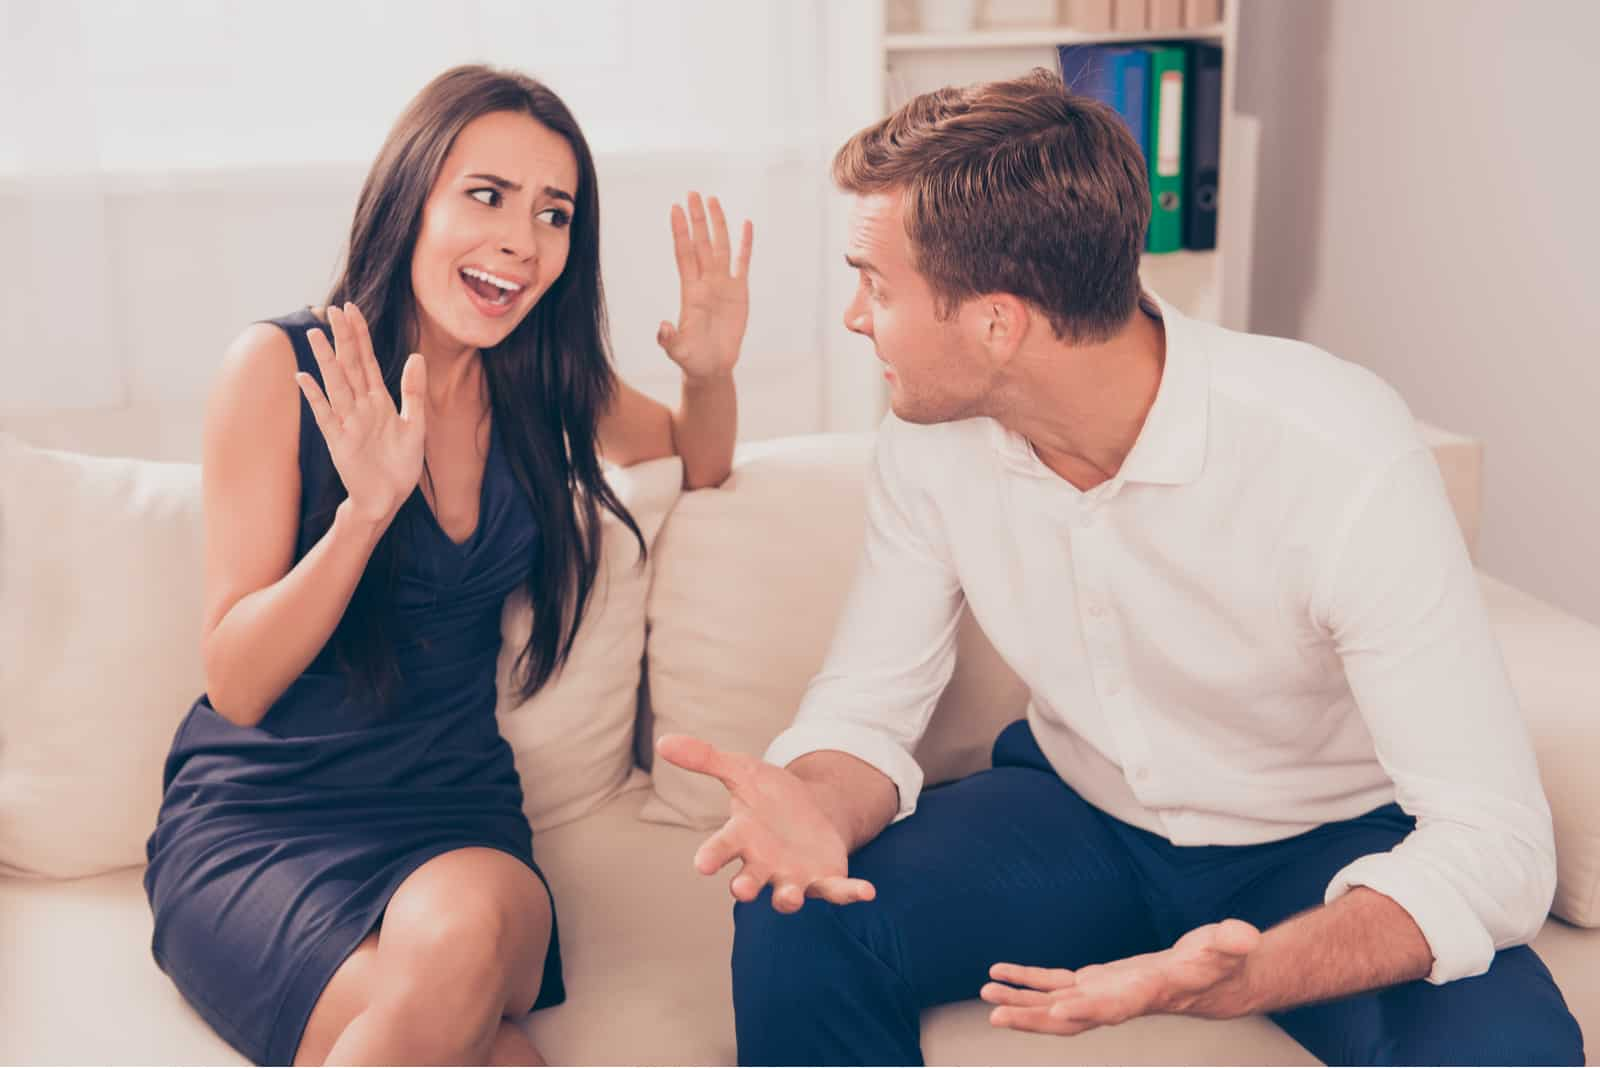 a man and a woman sit on the couch and quarrel